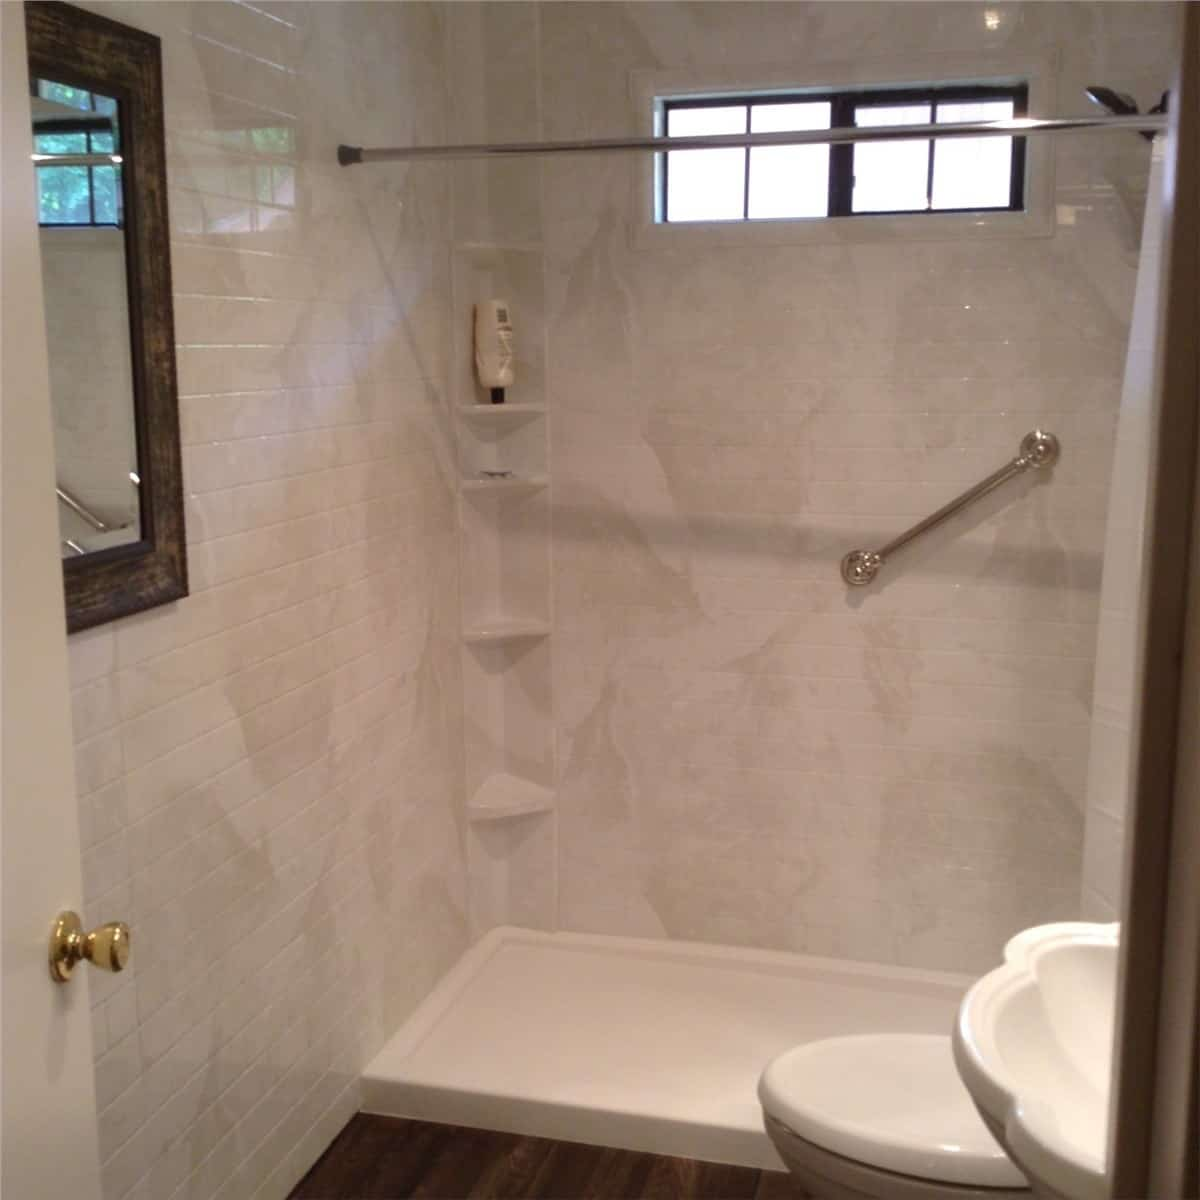 Tub to shower conversion - after 3